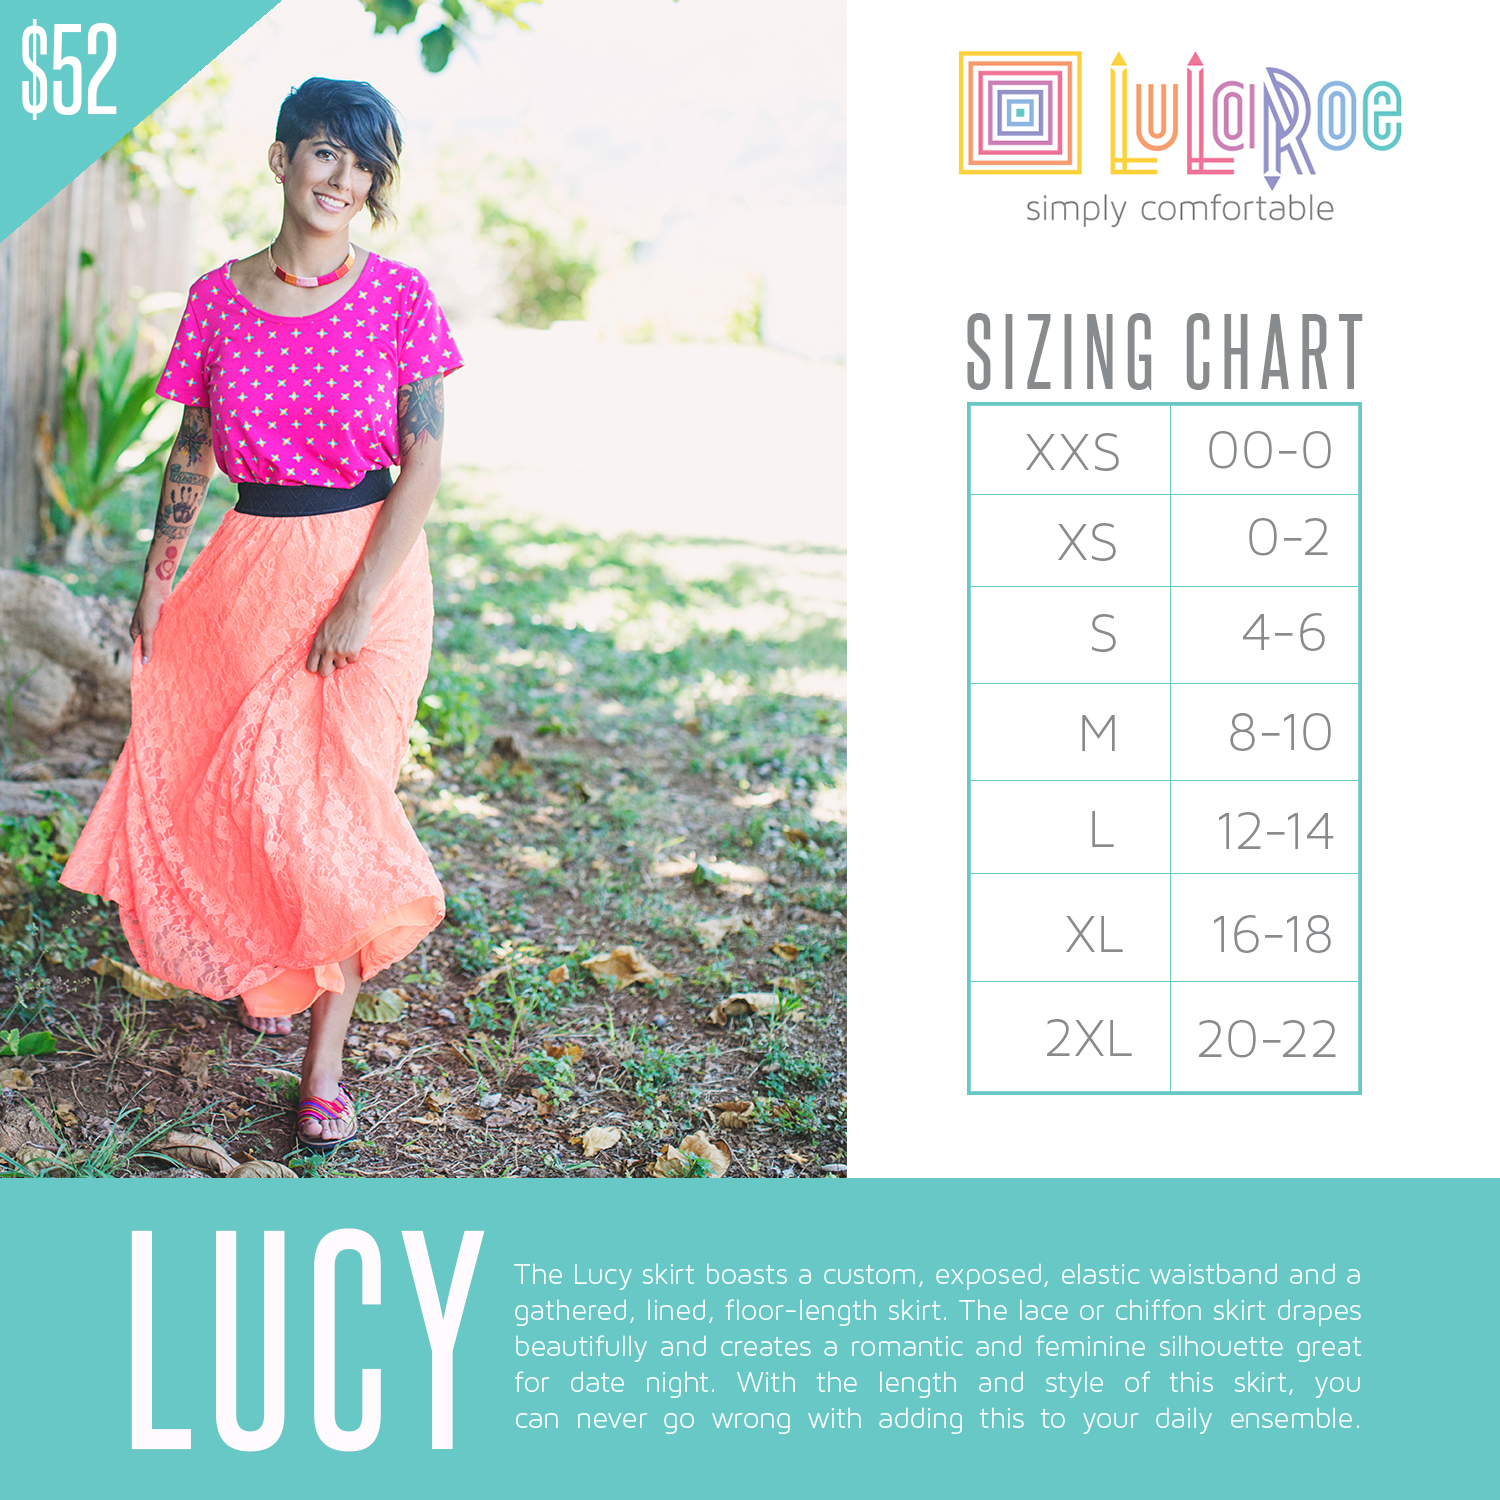 131a2ce37 With the length and style of this skirt, you can never go wrong with adding  this to your daily ensemble. Lucy XX-Small (XXS) LuLaRoe ...